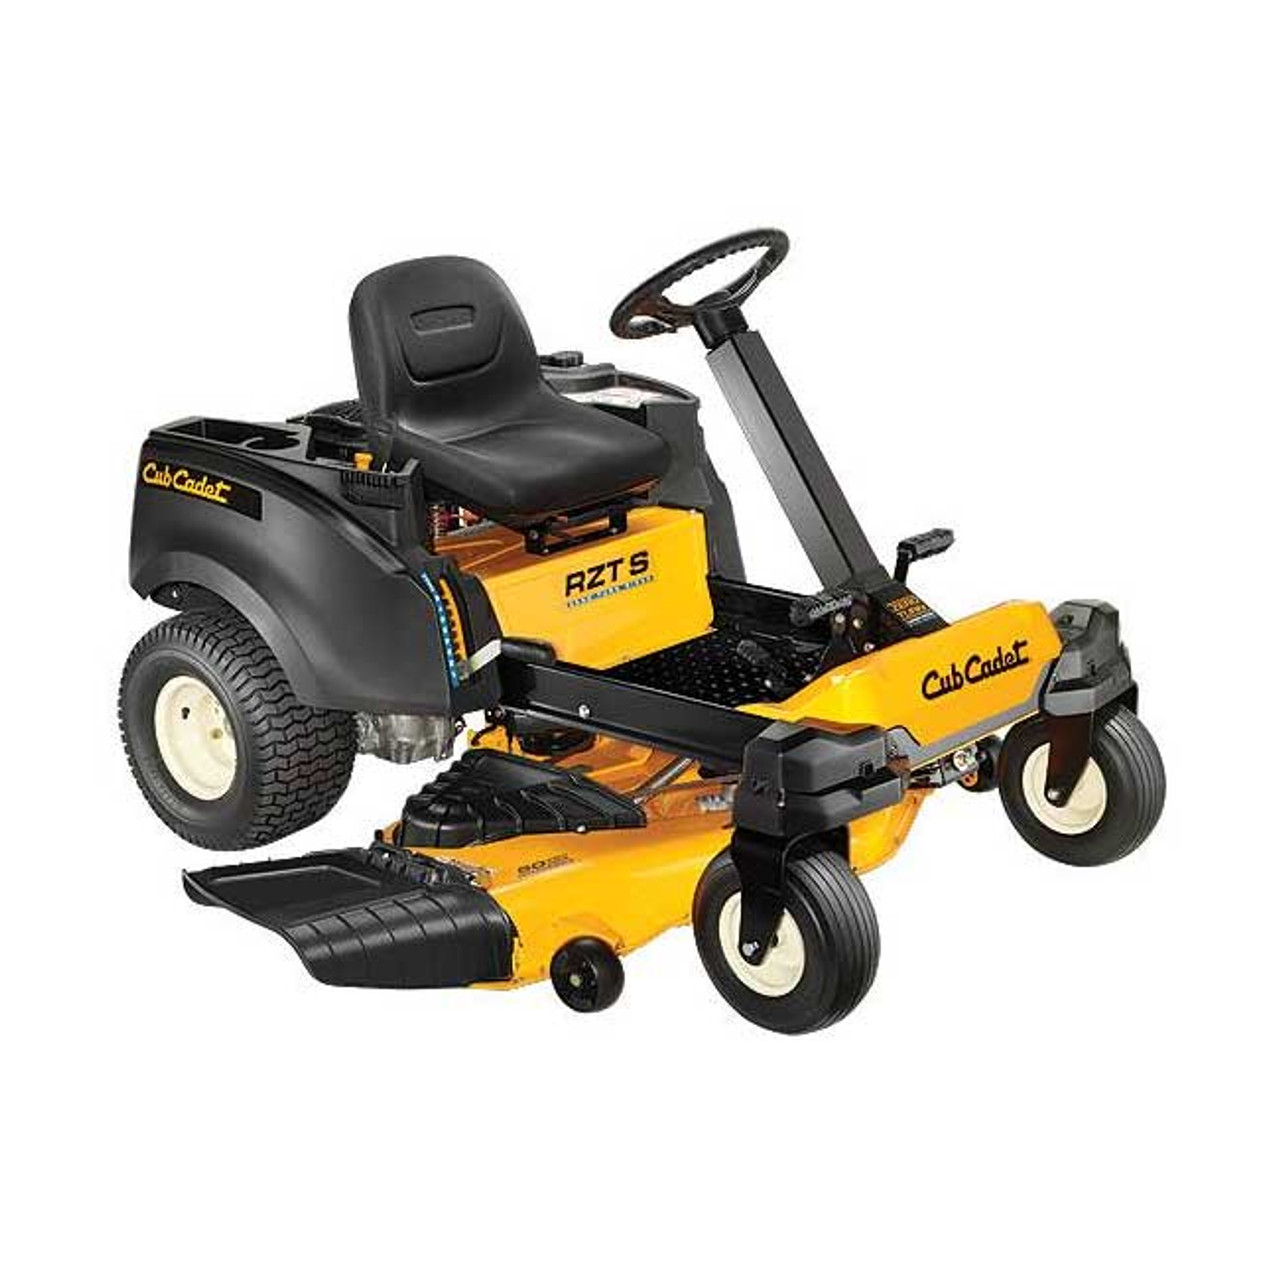 Cub Cadet RZT® S 50 - Zero-Turn Rider with Steering Wheel Control and  Four-Wheel Steering